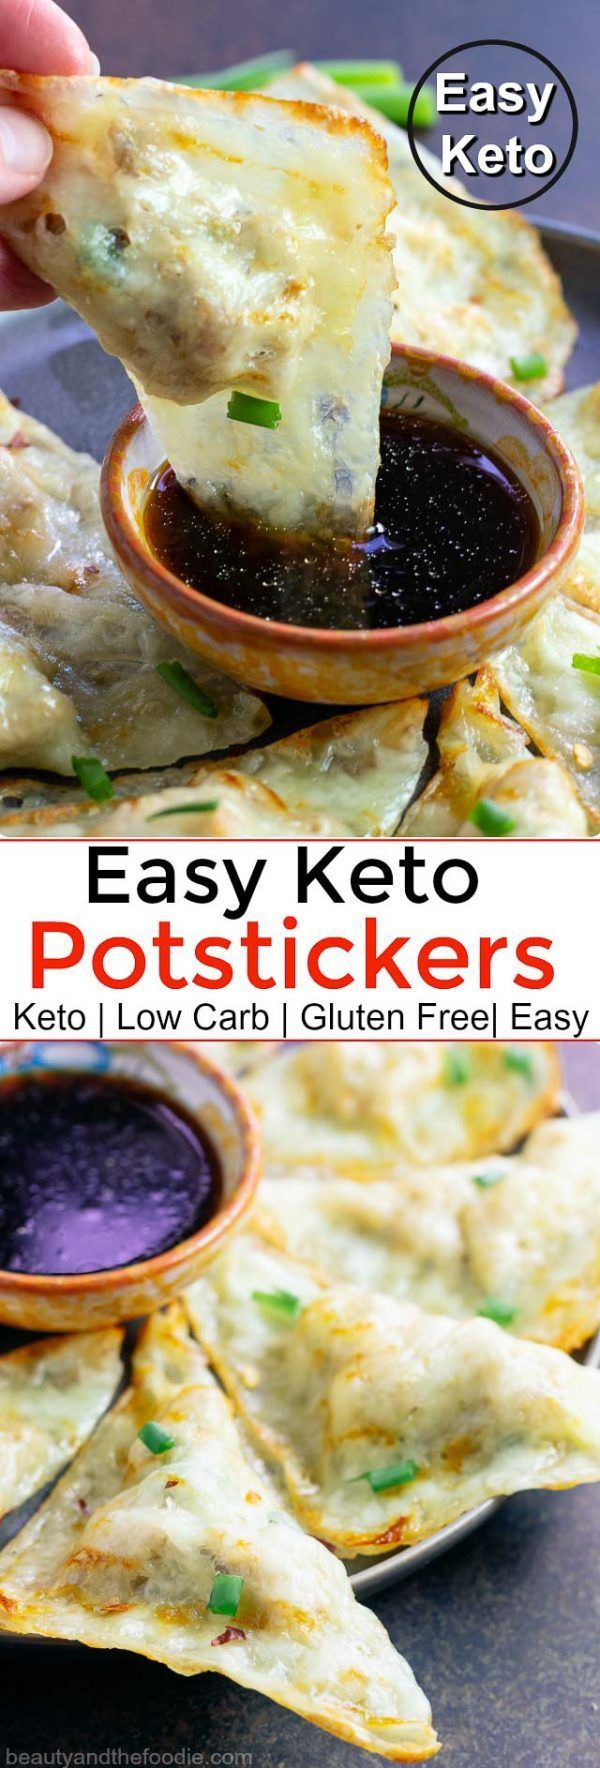 Easy Keto Potstickers with Asian Dipping Sauce